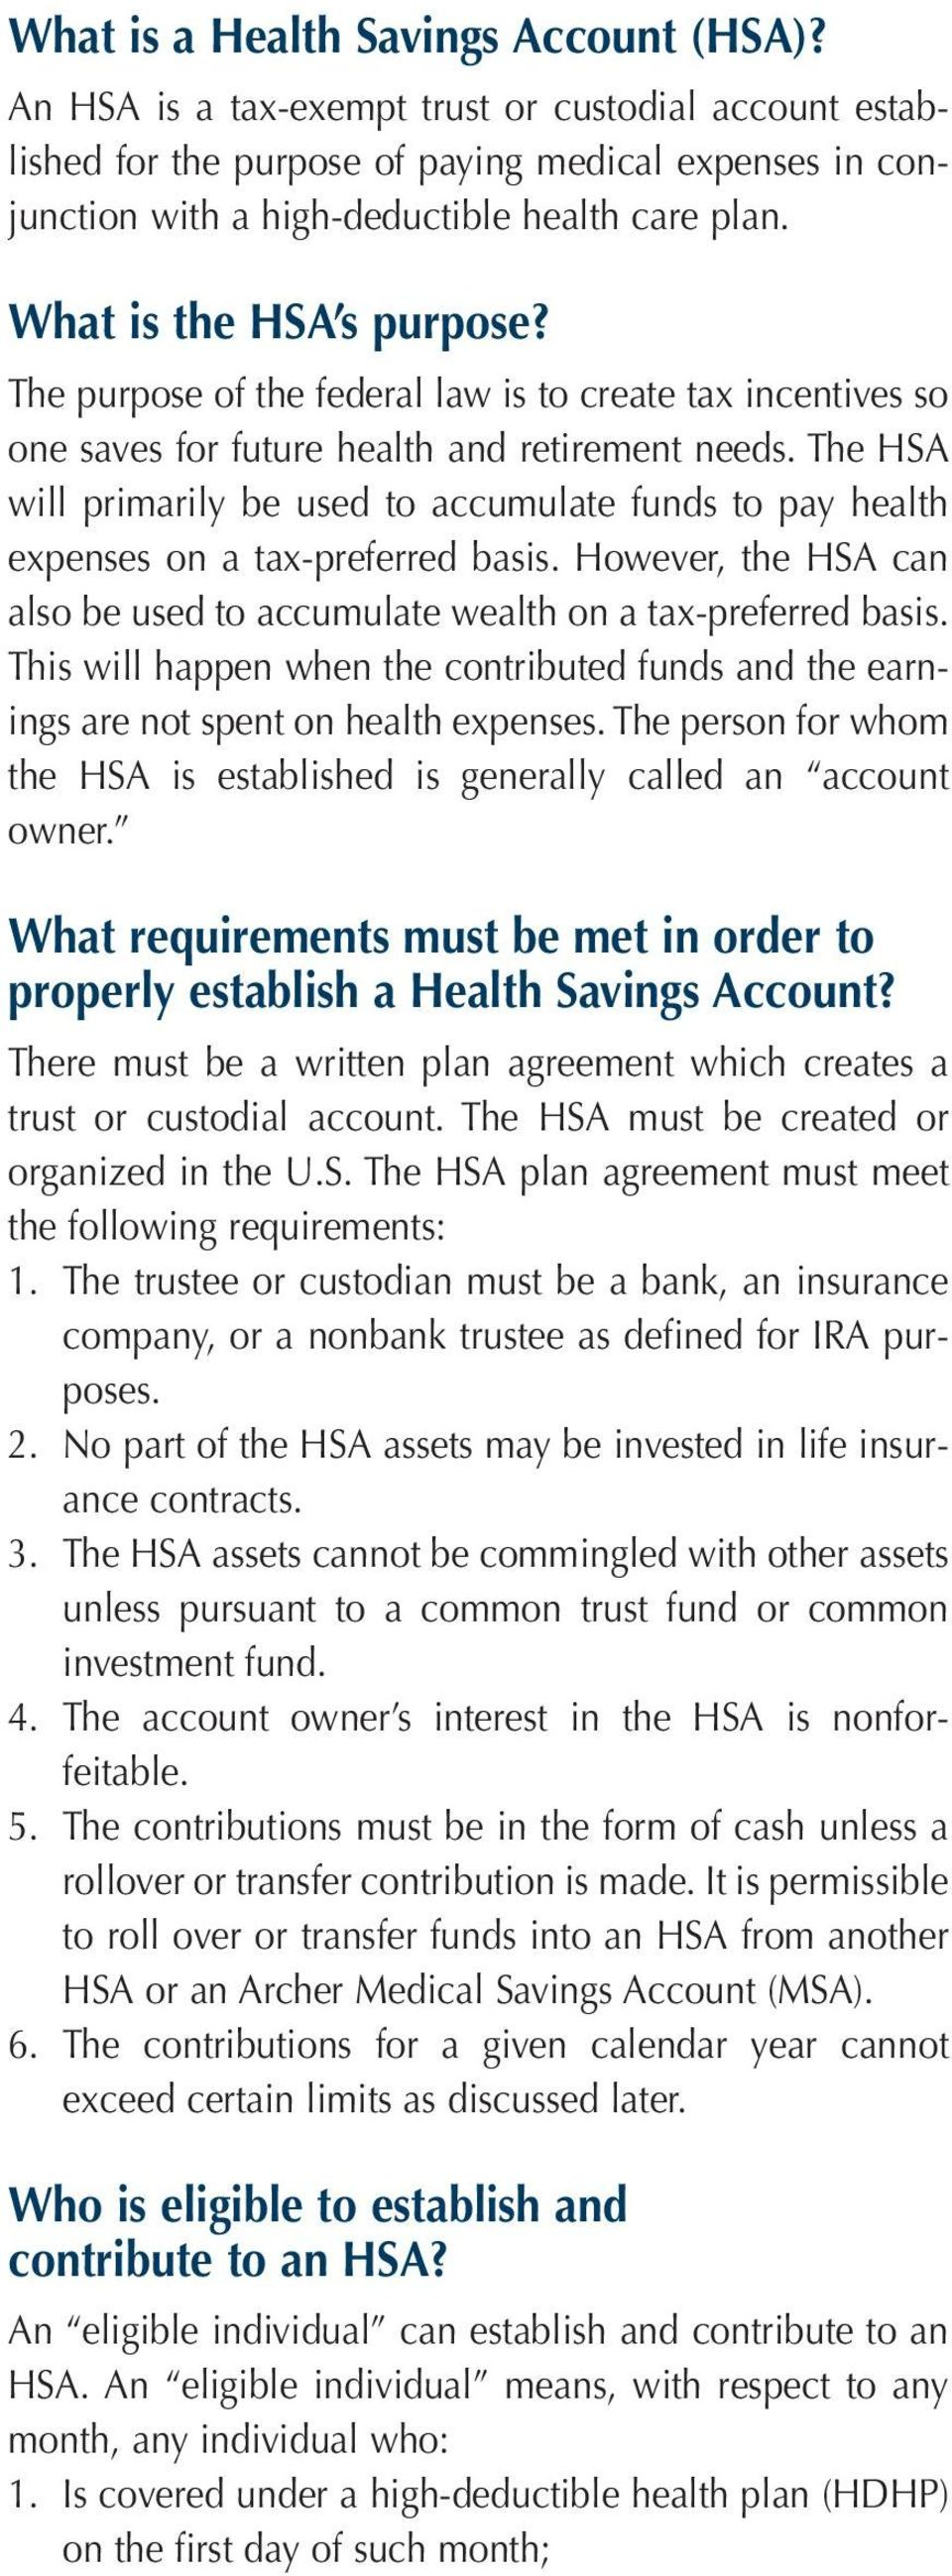 The HSA will primarily be used to accumulate funds to pay health expenses on a tax-preferred basis. However, the HSA can also be used to accumulate wealth on a tax-preferred basis.